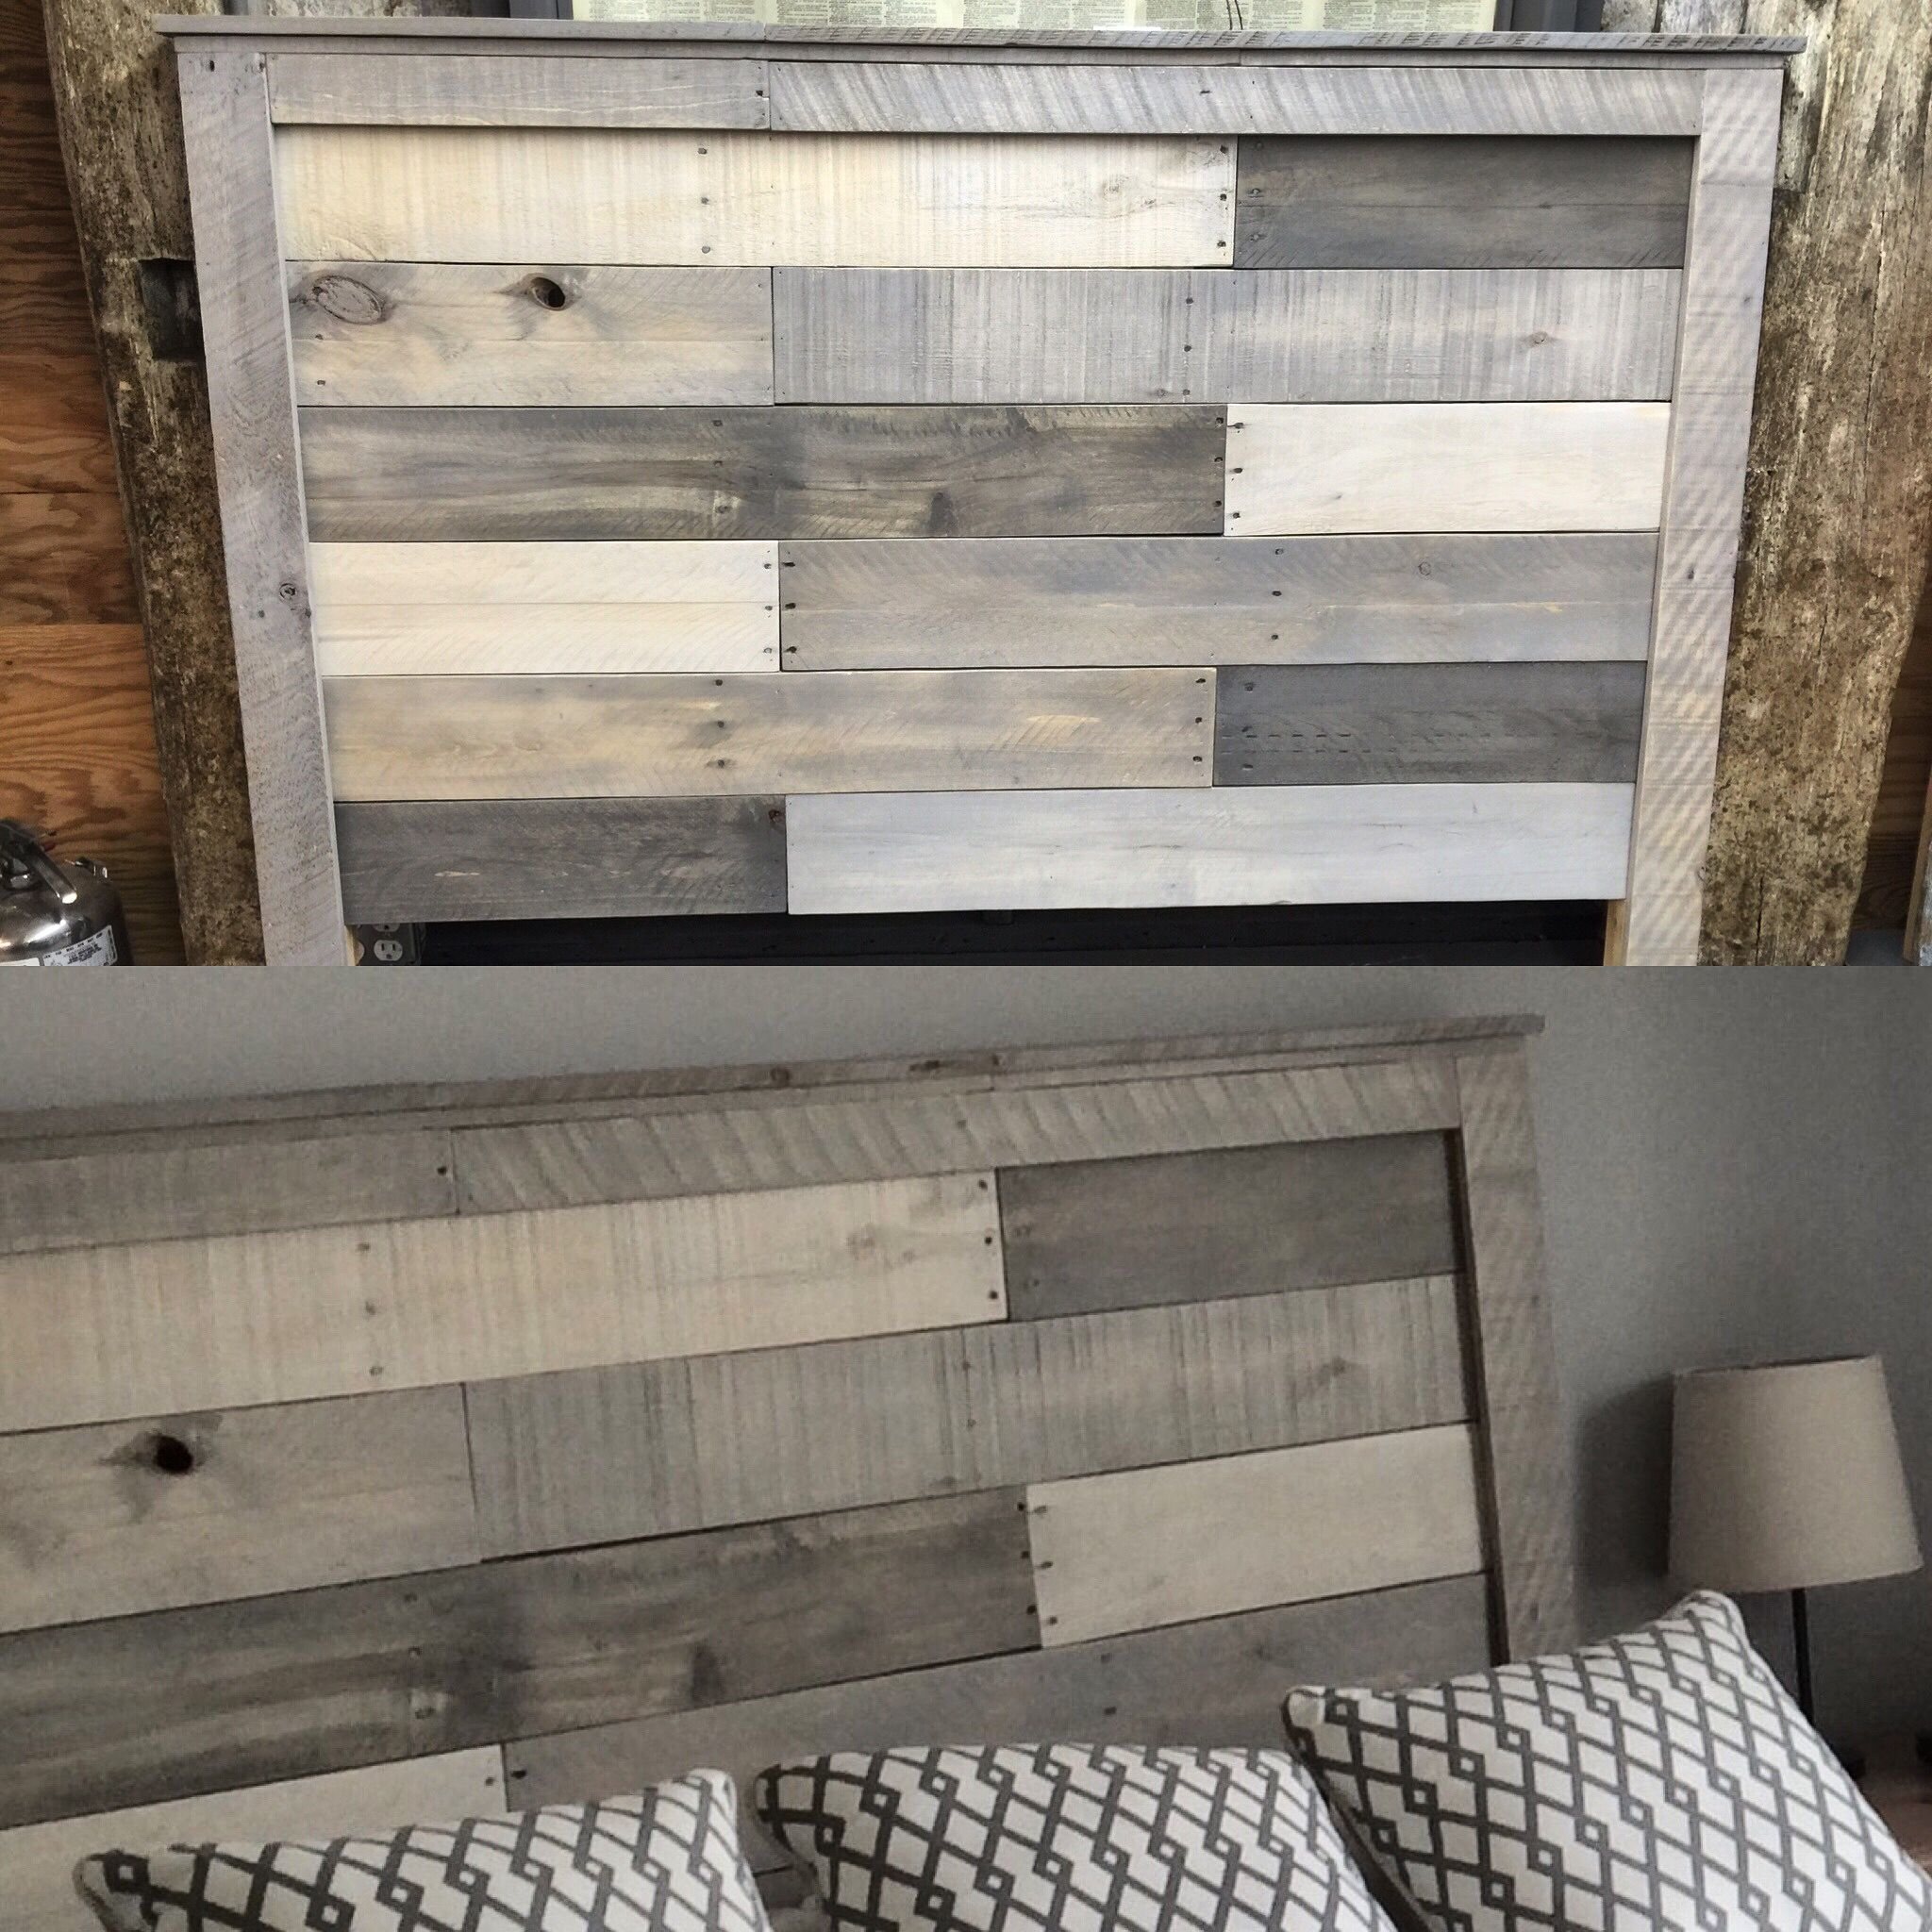 full platform of sale to wood board raised build plans single how a keyword size headboard simple with bedroom pallet design interior bed queen frame for